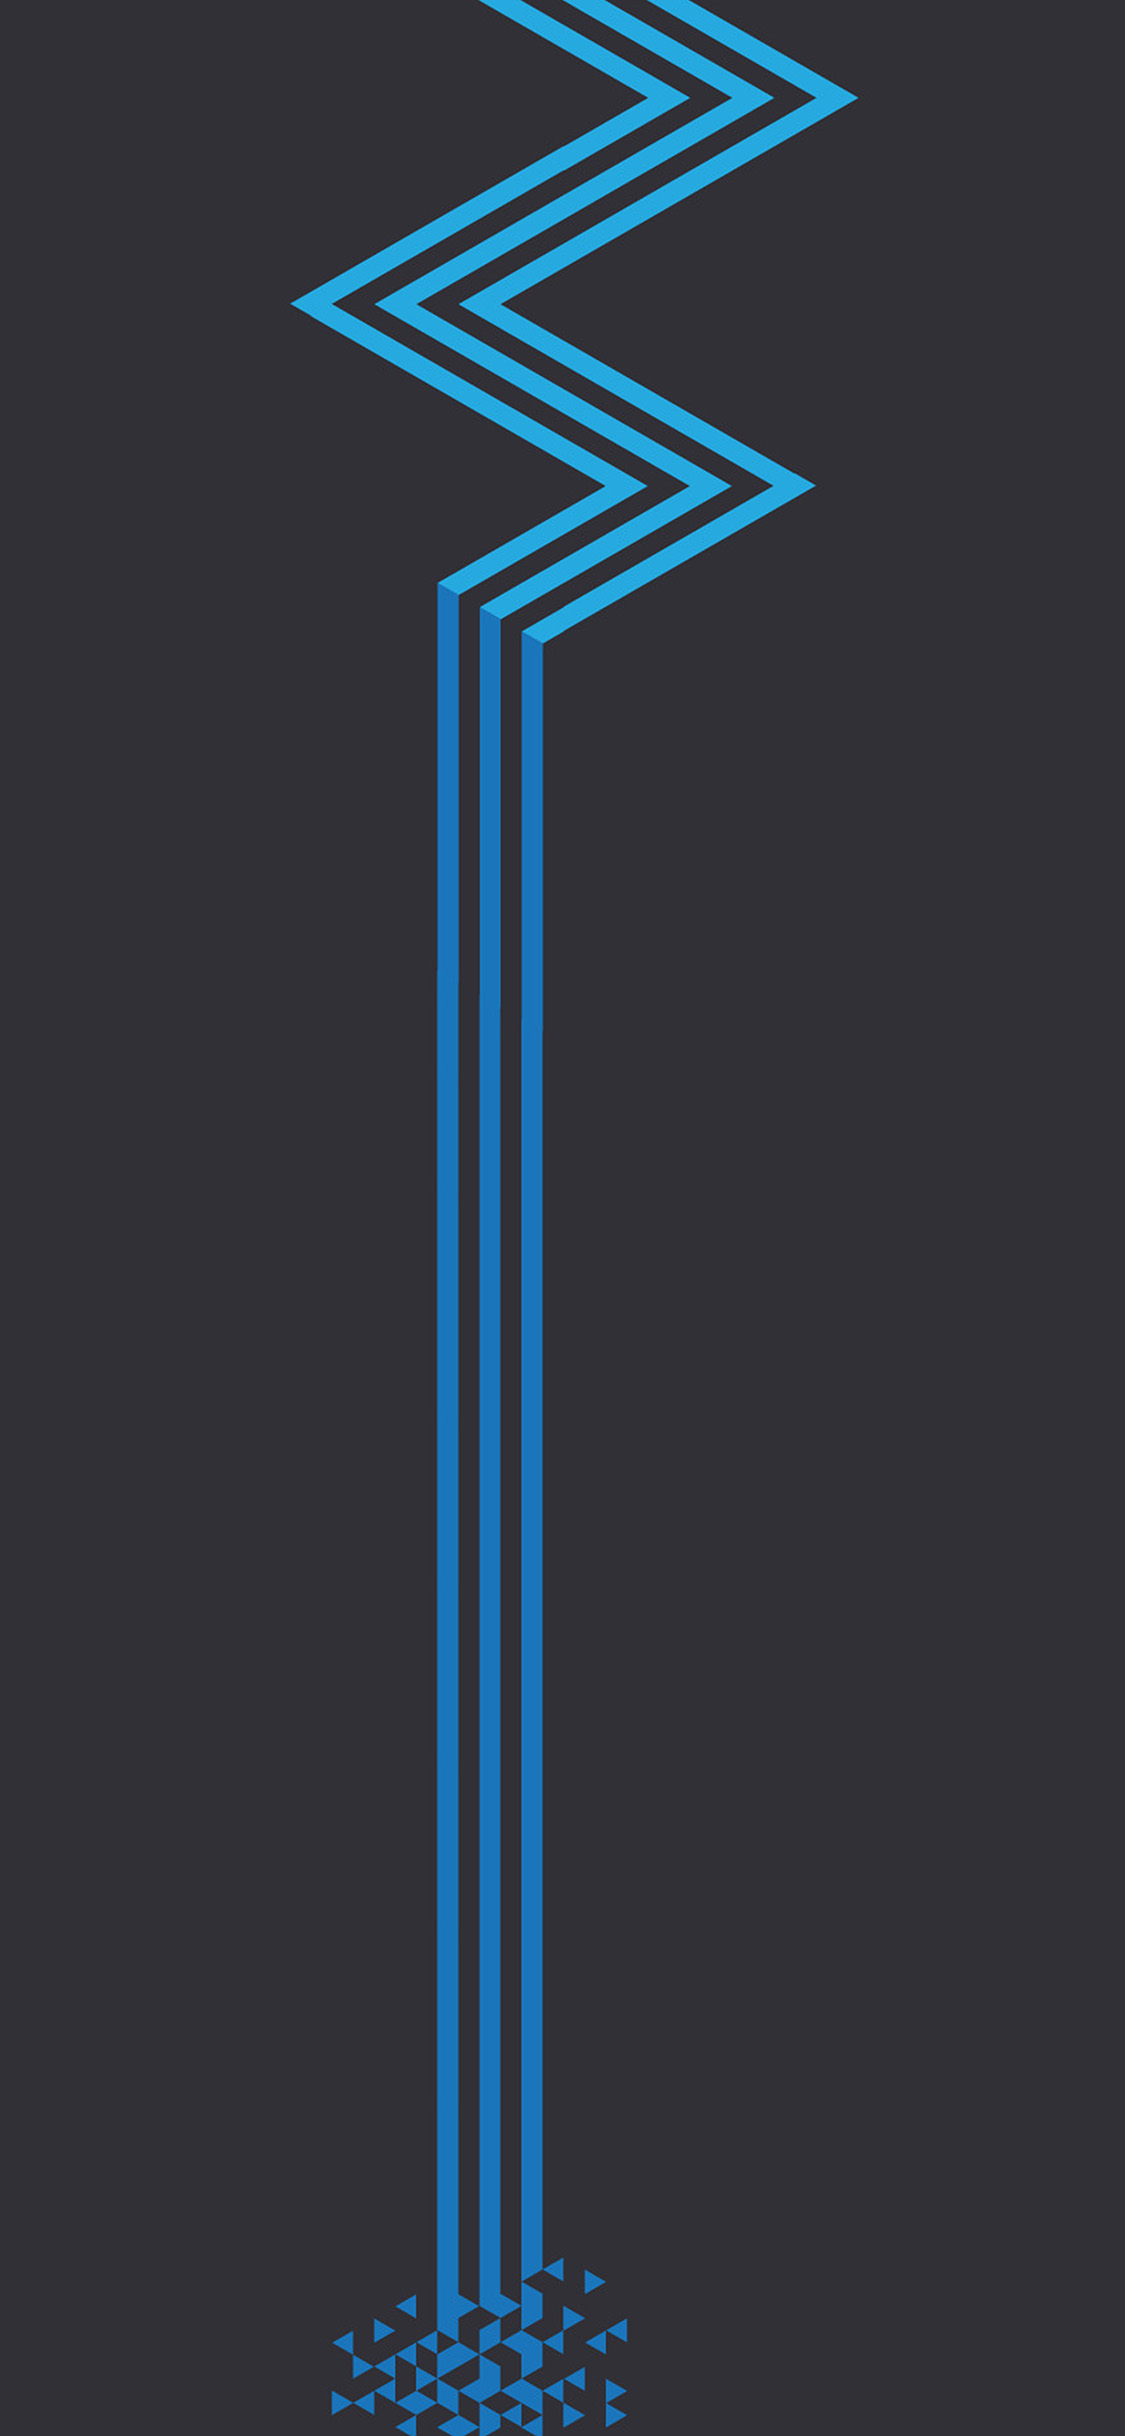 iPhonexpapers.com-Apple-iPhone-wallpaper-vz23-minimal-blue-dark-line-abstract-digital-pattern-background